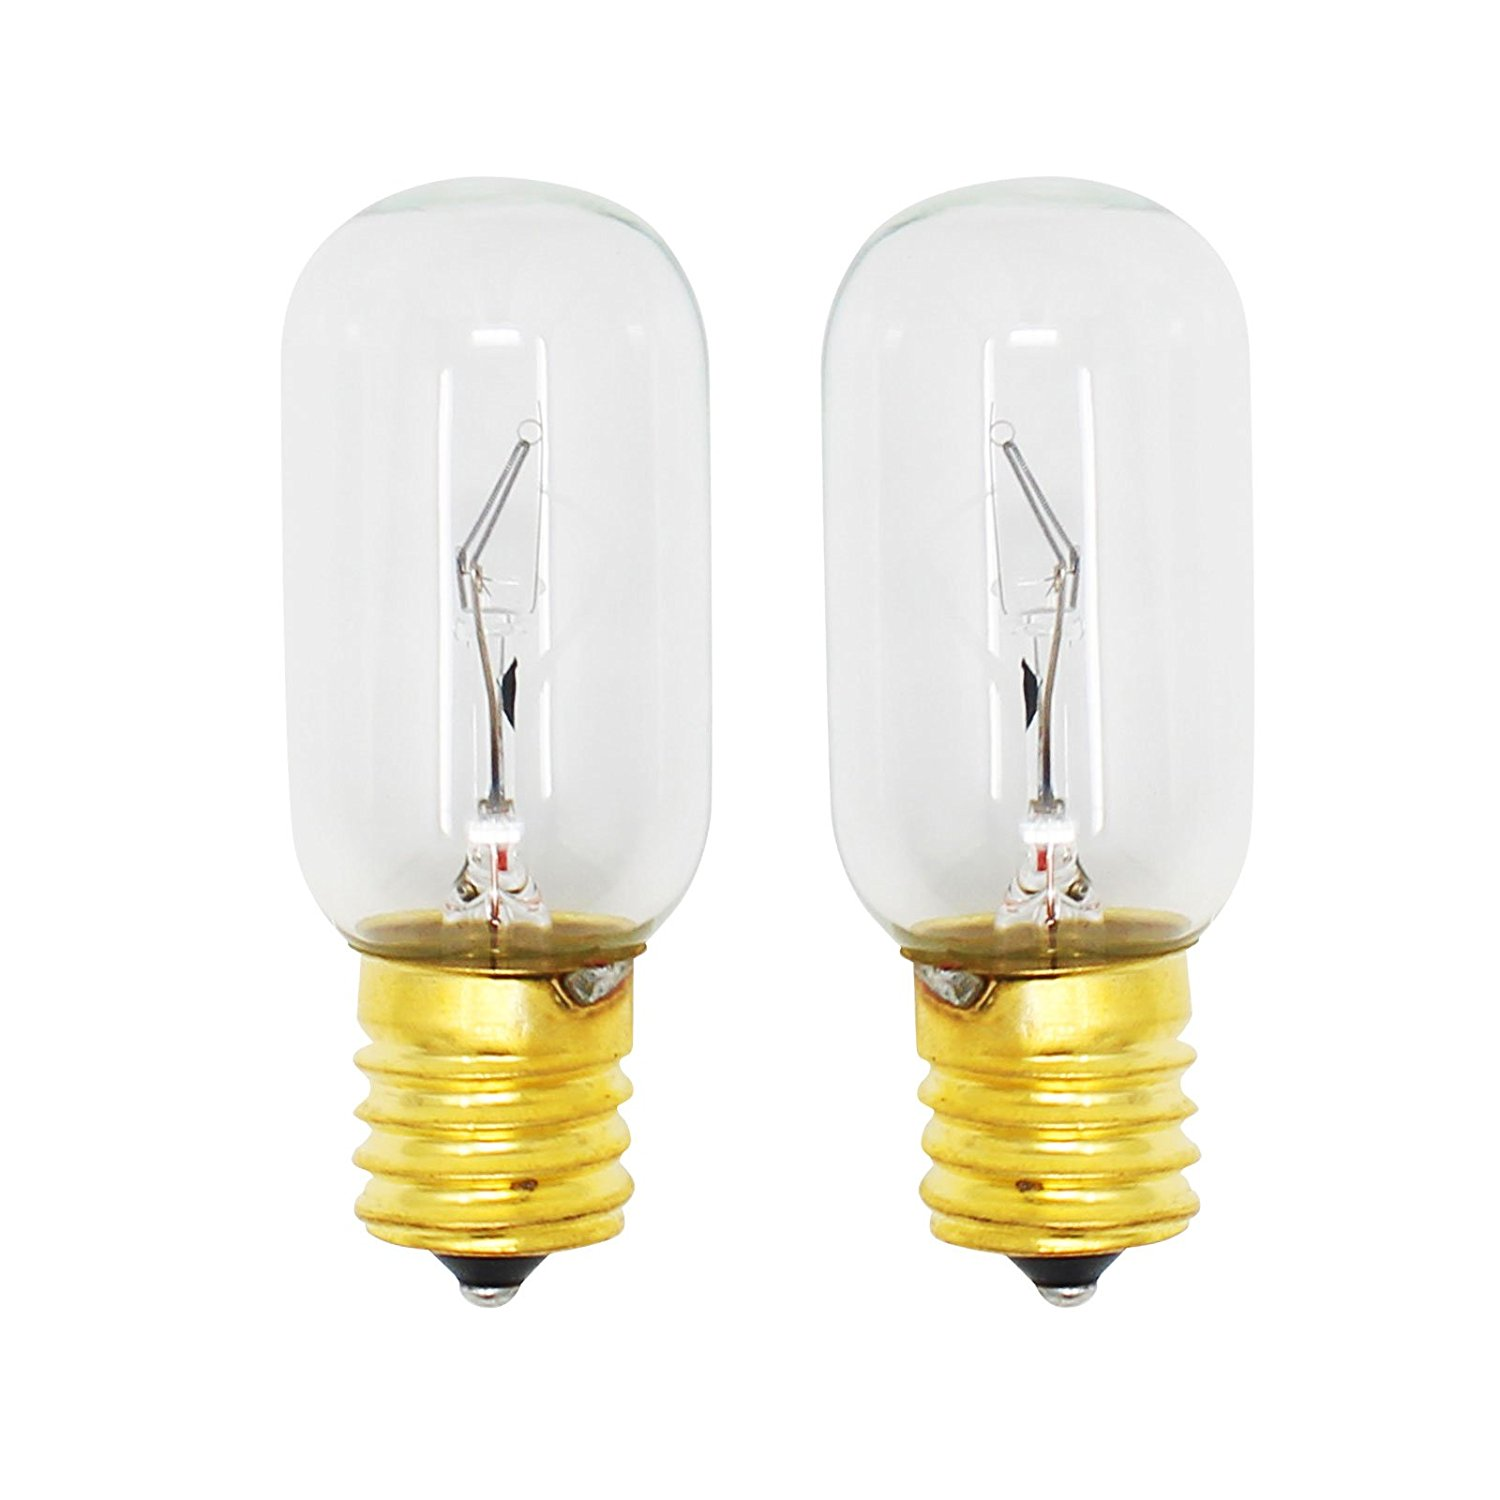 2-Pack Replacement Light Bulb for LG 1266875 Microwave - Compatible LG 6912W1Z004B Light Bulb